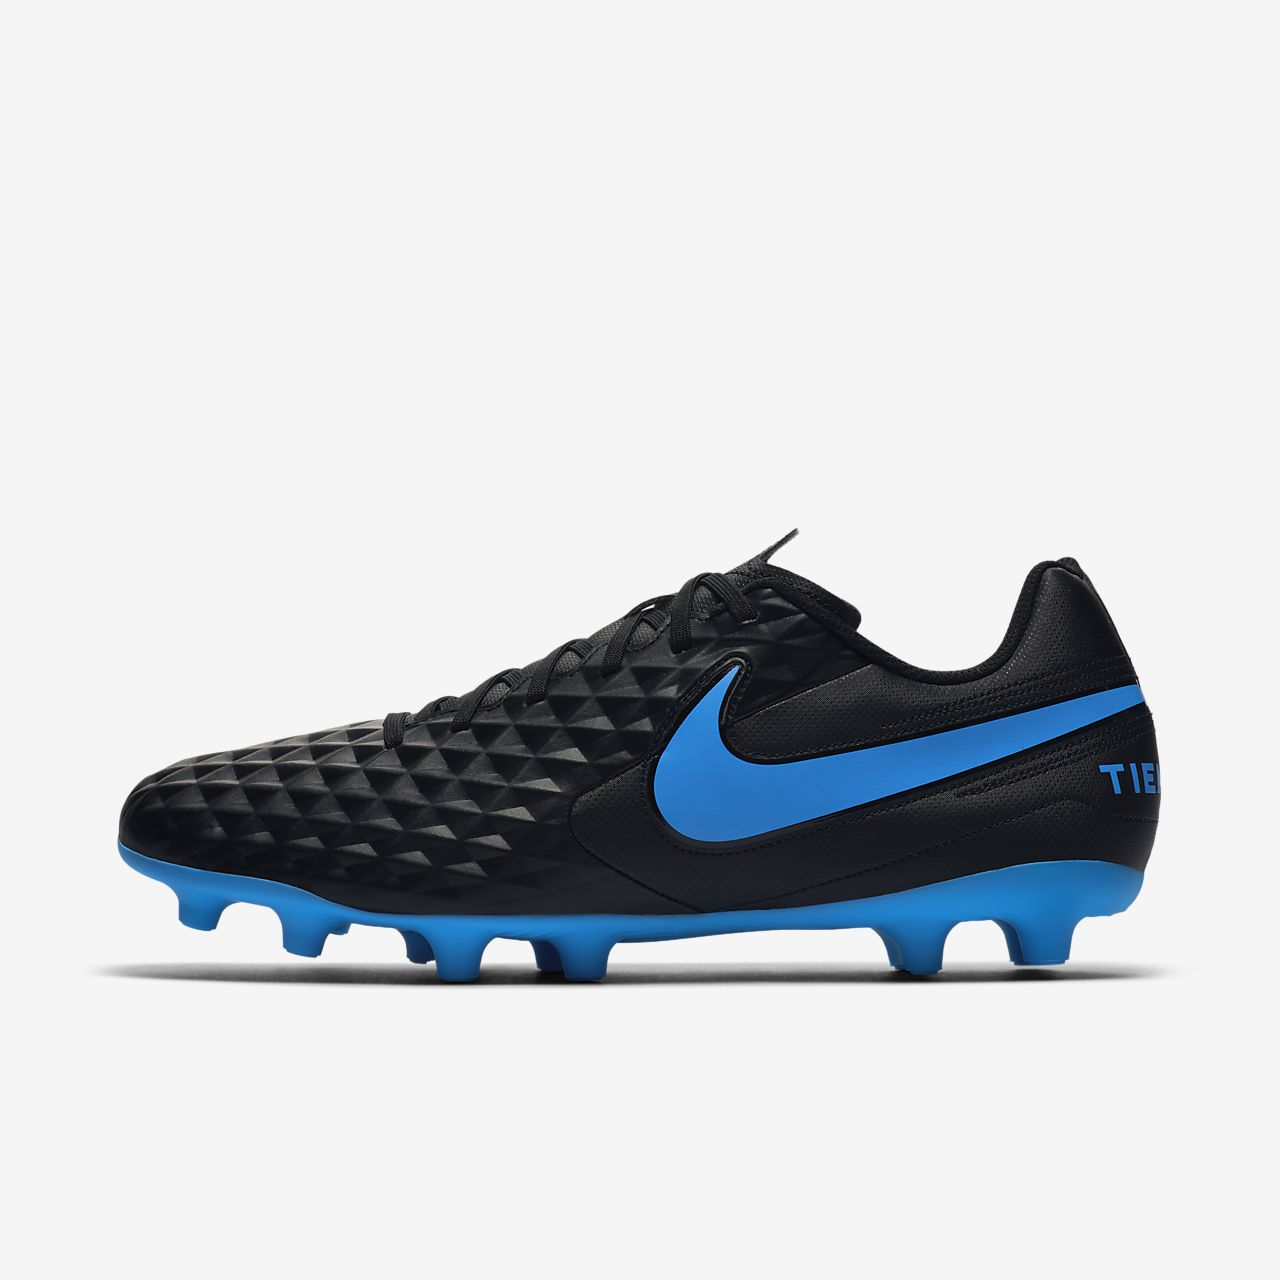 Nike Tiempo Legend 8 Club MG Multi-Ground Soccer Cleat